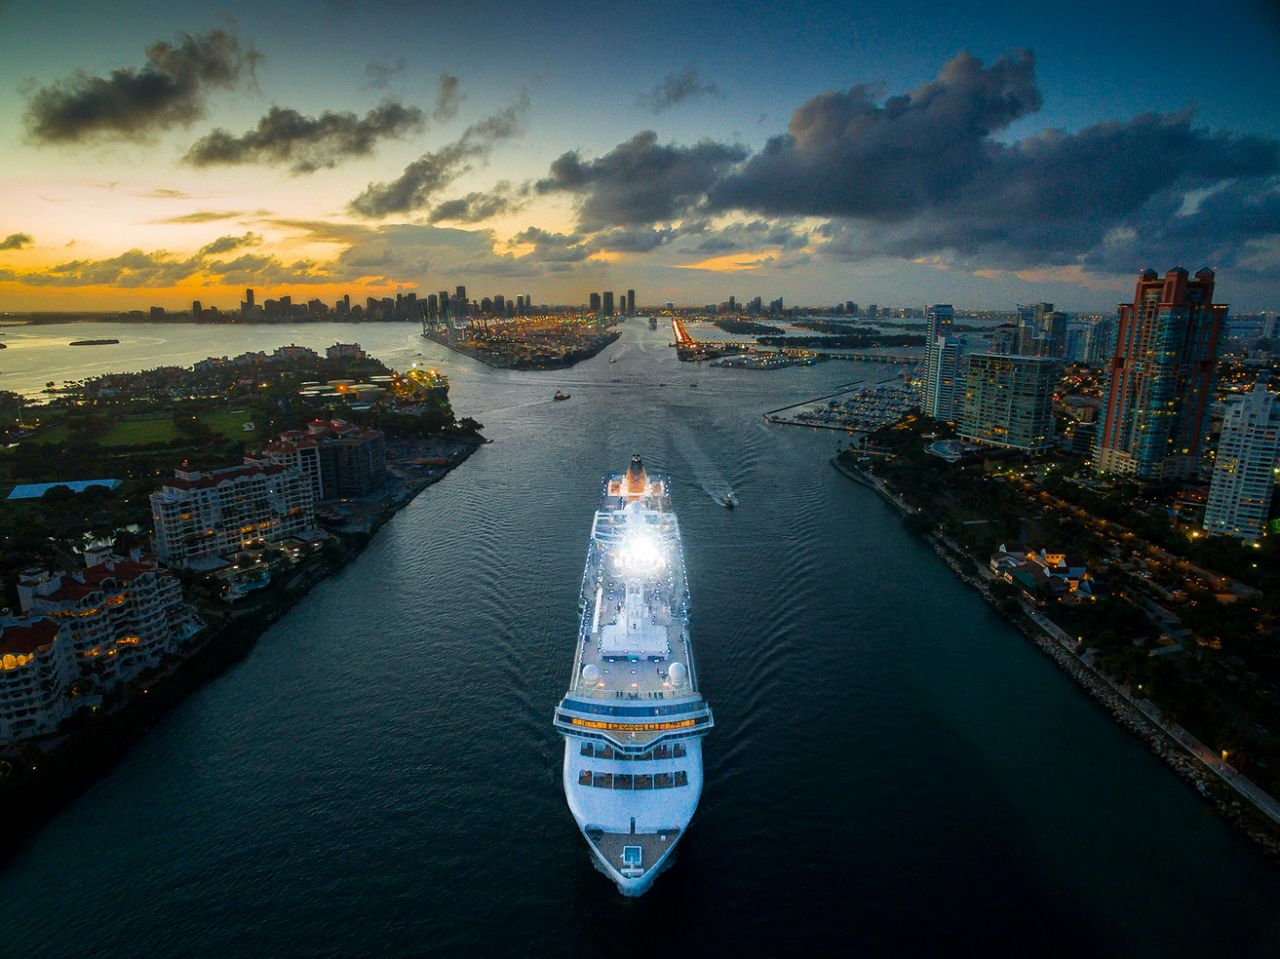 Cruise ship in Miami. Photo by iMaerial_com, taken at 131 feet.